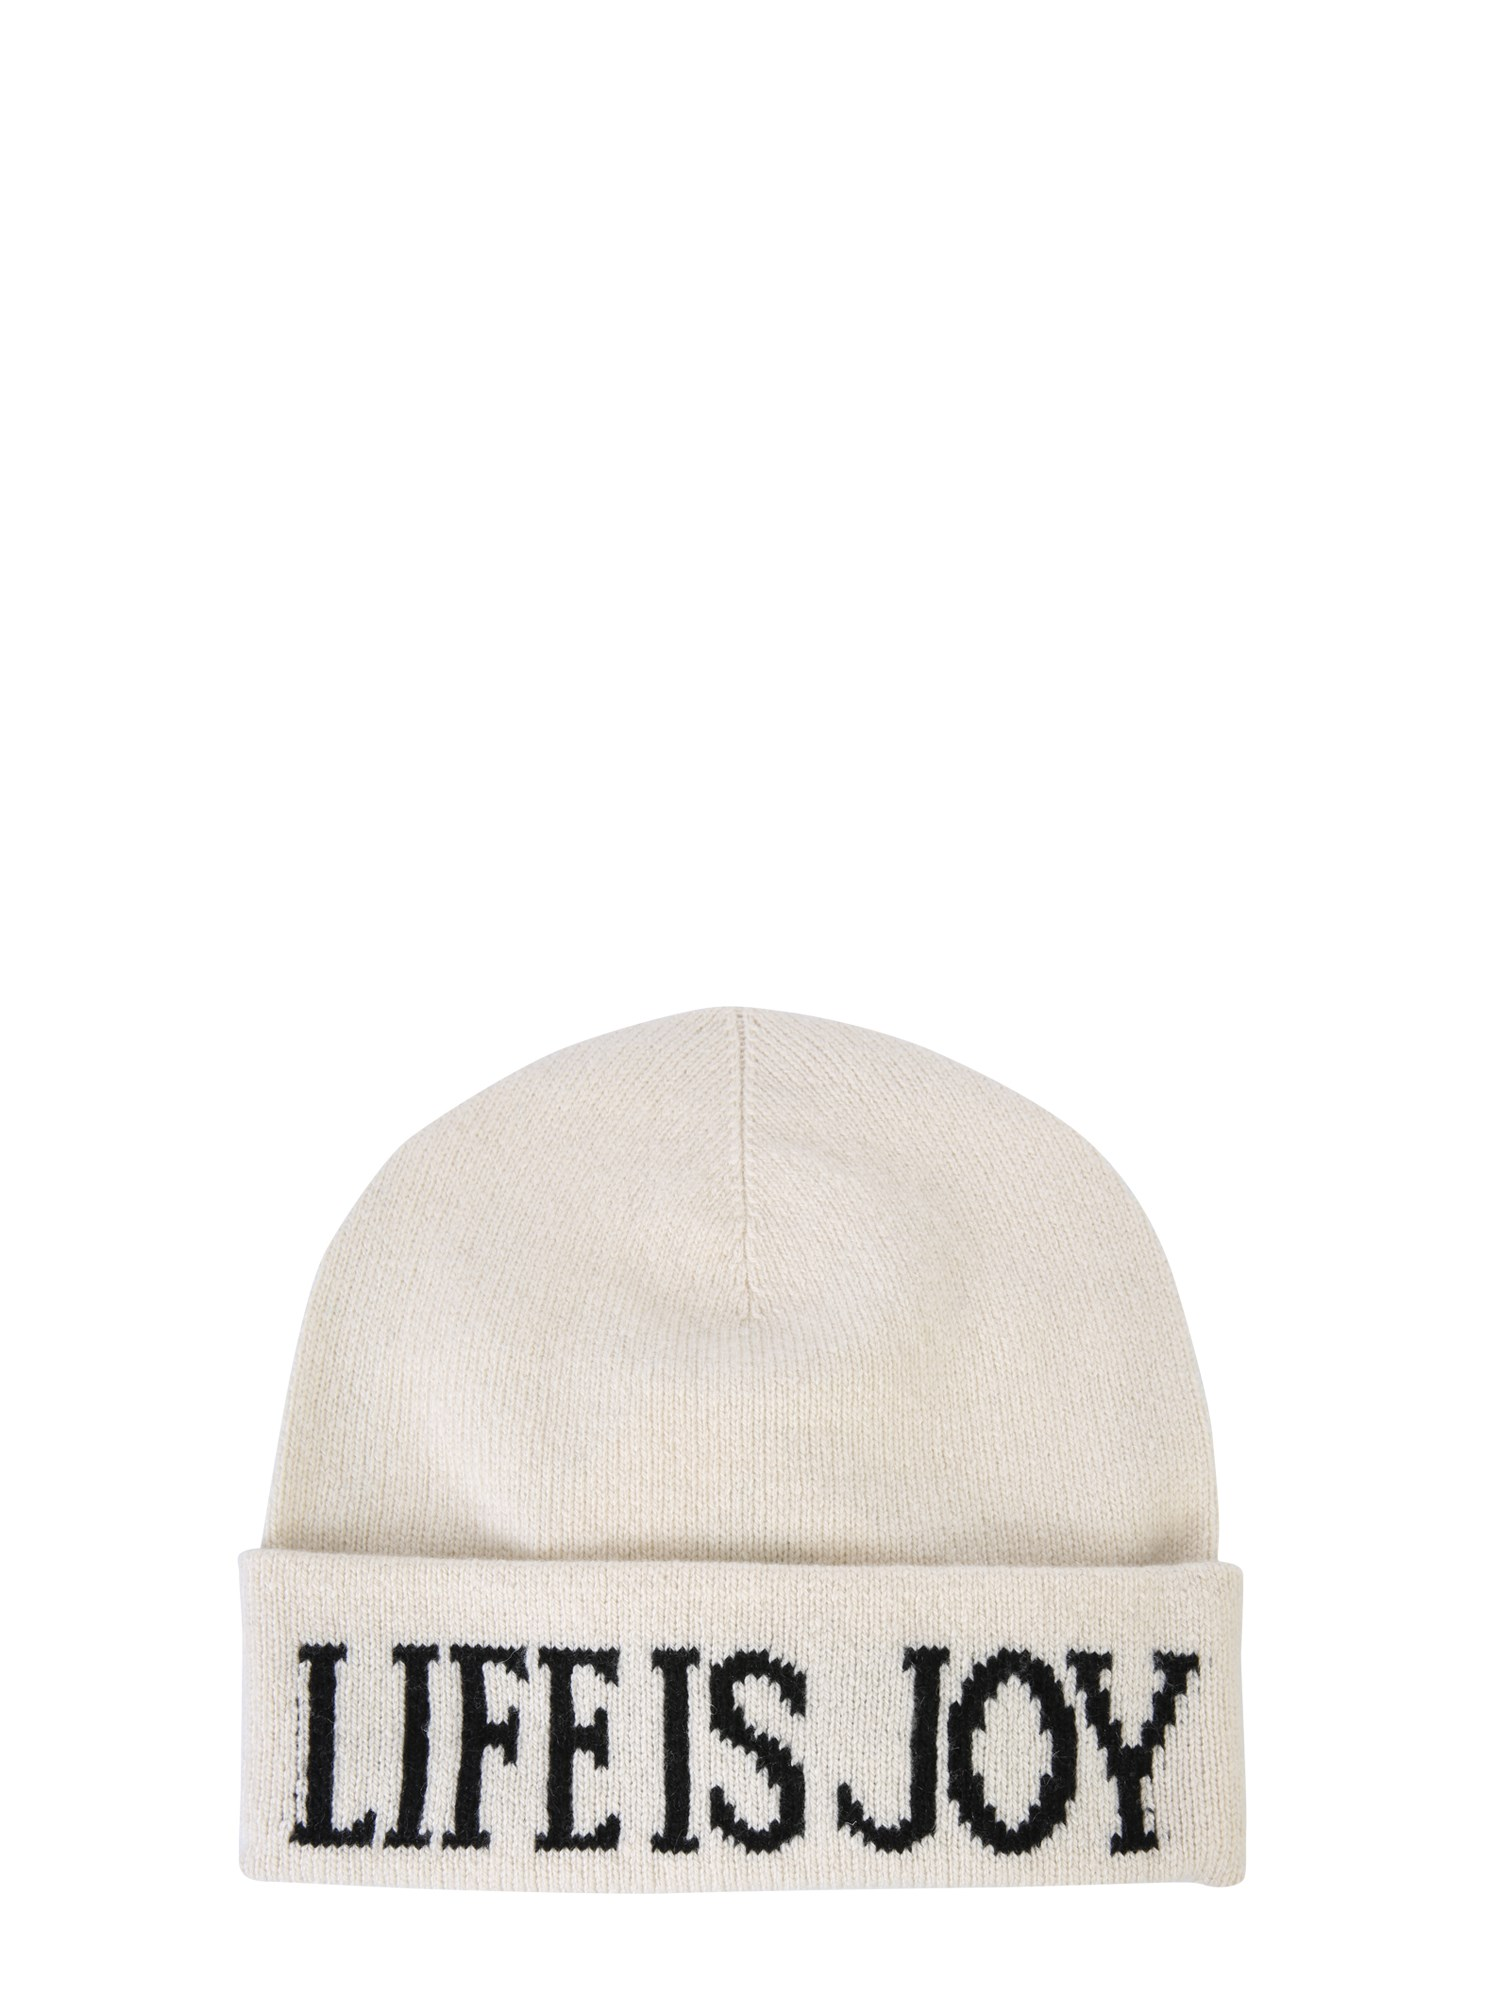 "Alberta Ferretti ""LIFE IS JOY"" HAT"